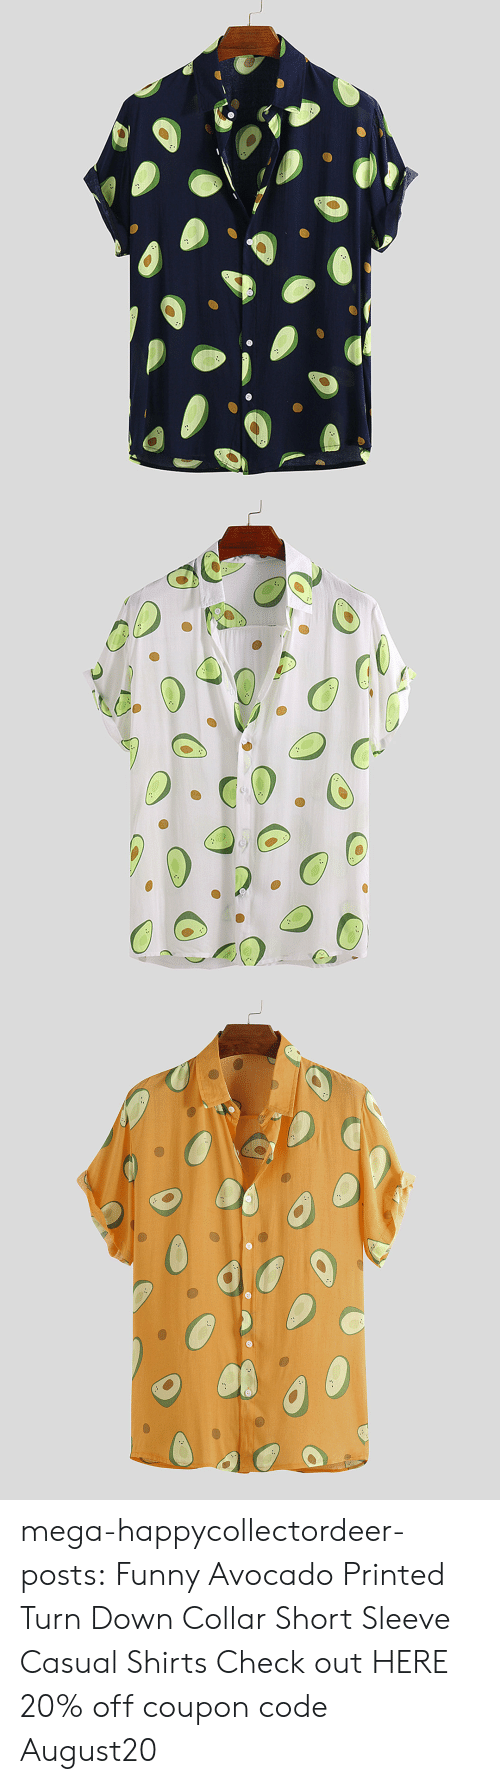 Funny, Tumblr, and Avocado: mega-happycollectordeer-posts:   Funny Avocado Printed Turn Down Collar Short Sleeve Casual Shirts   Check out HERE 20% off coupon code:August20